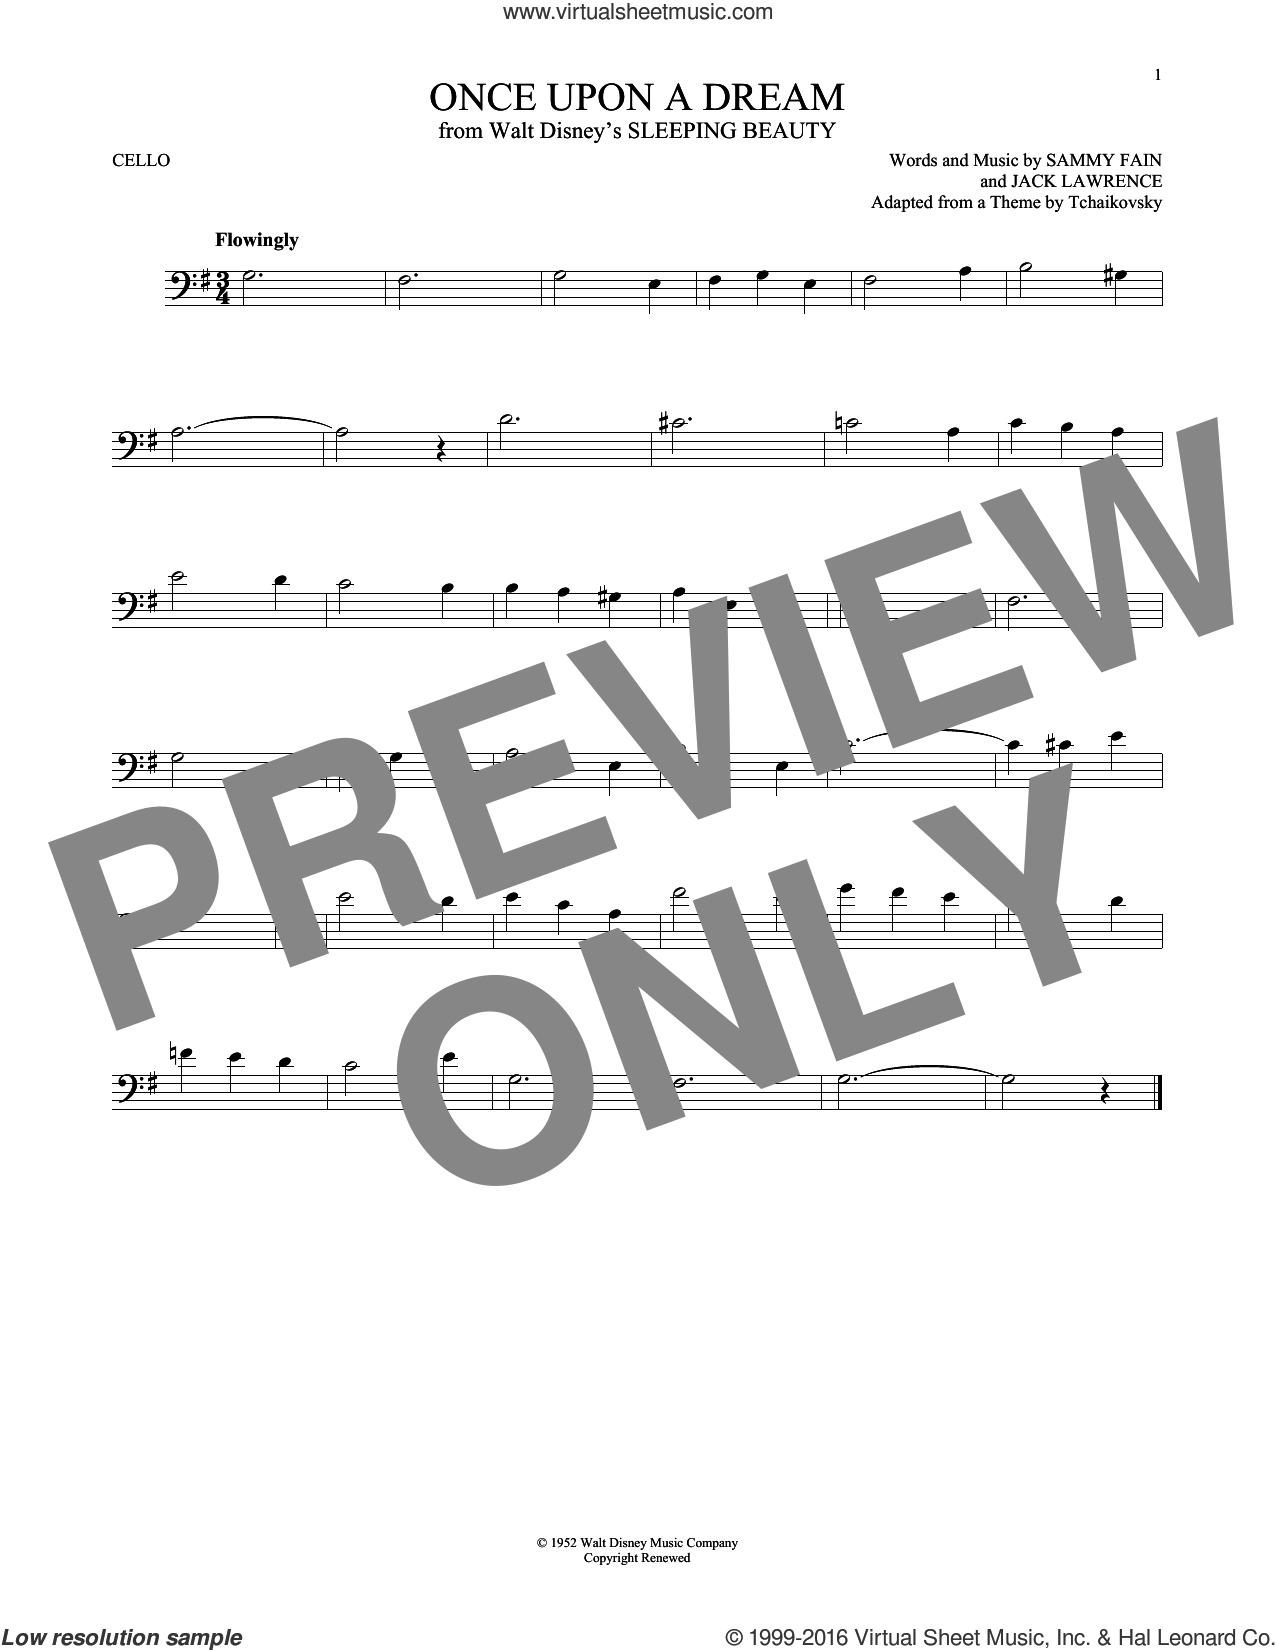 Once Upon A Dream sheet music for cello solo by Sammy Fain and Jack Lawrence, intermediate skill level